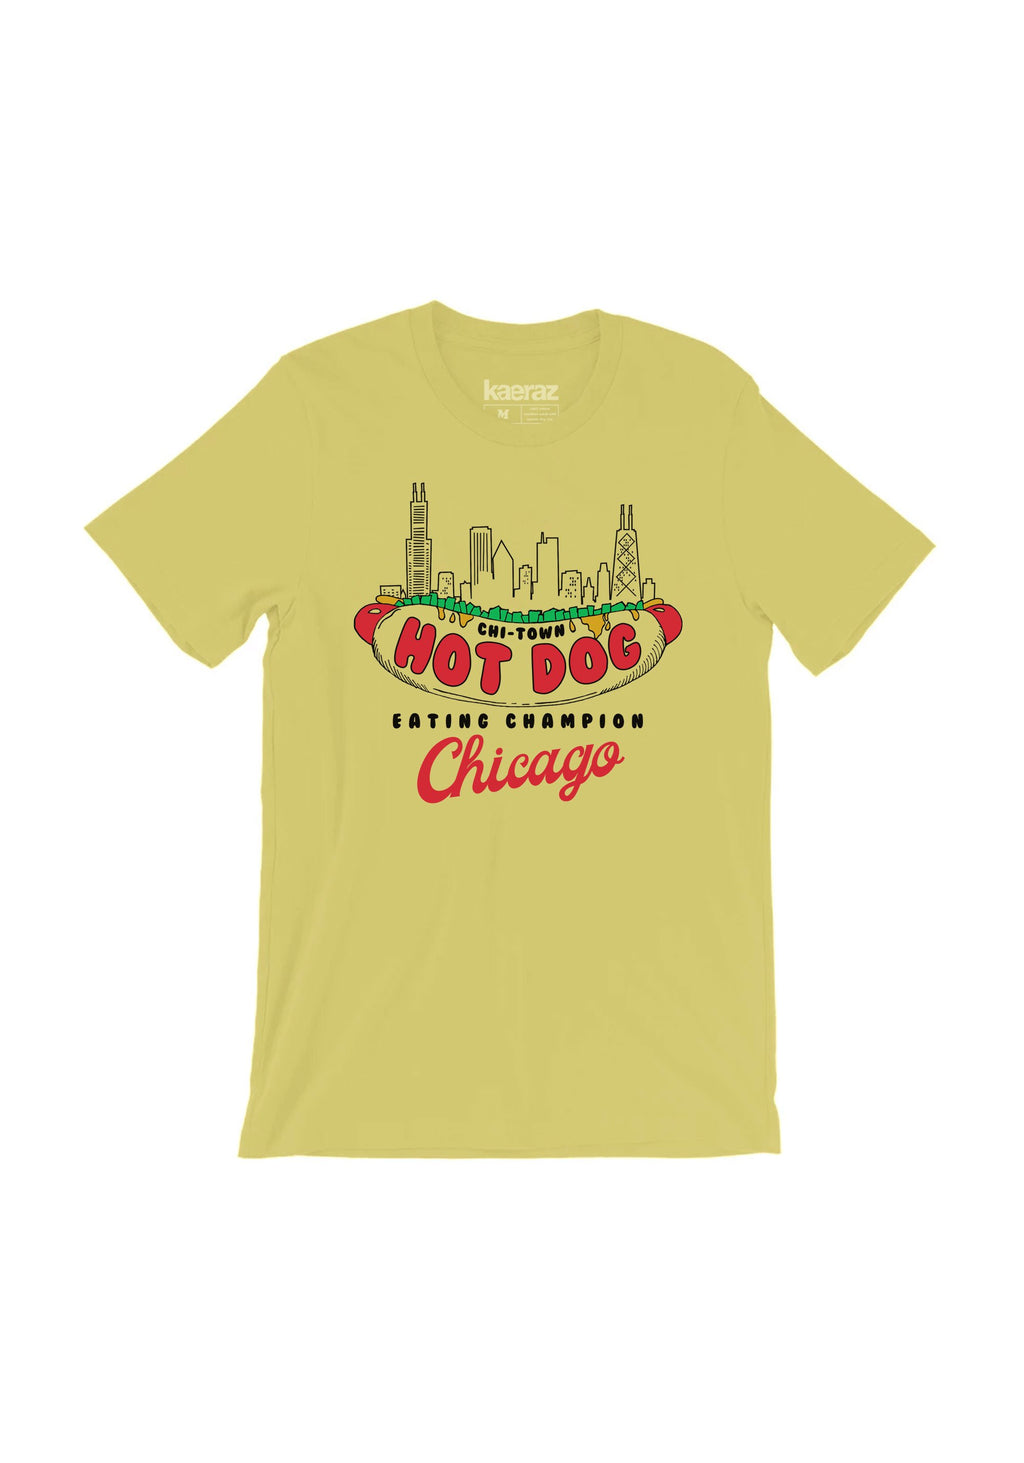 Chicago Hot Dog Champion Tee / womens graphic tees / vintage style t shirt / chi-town skyline shirt / Illinois windy city souvenir t-shirt